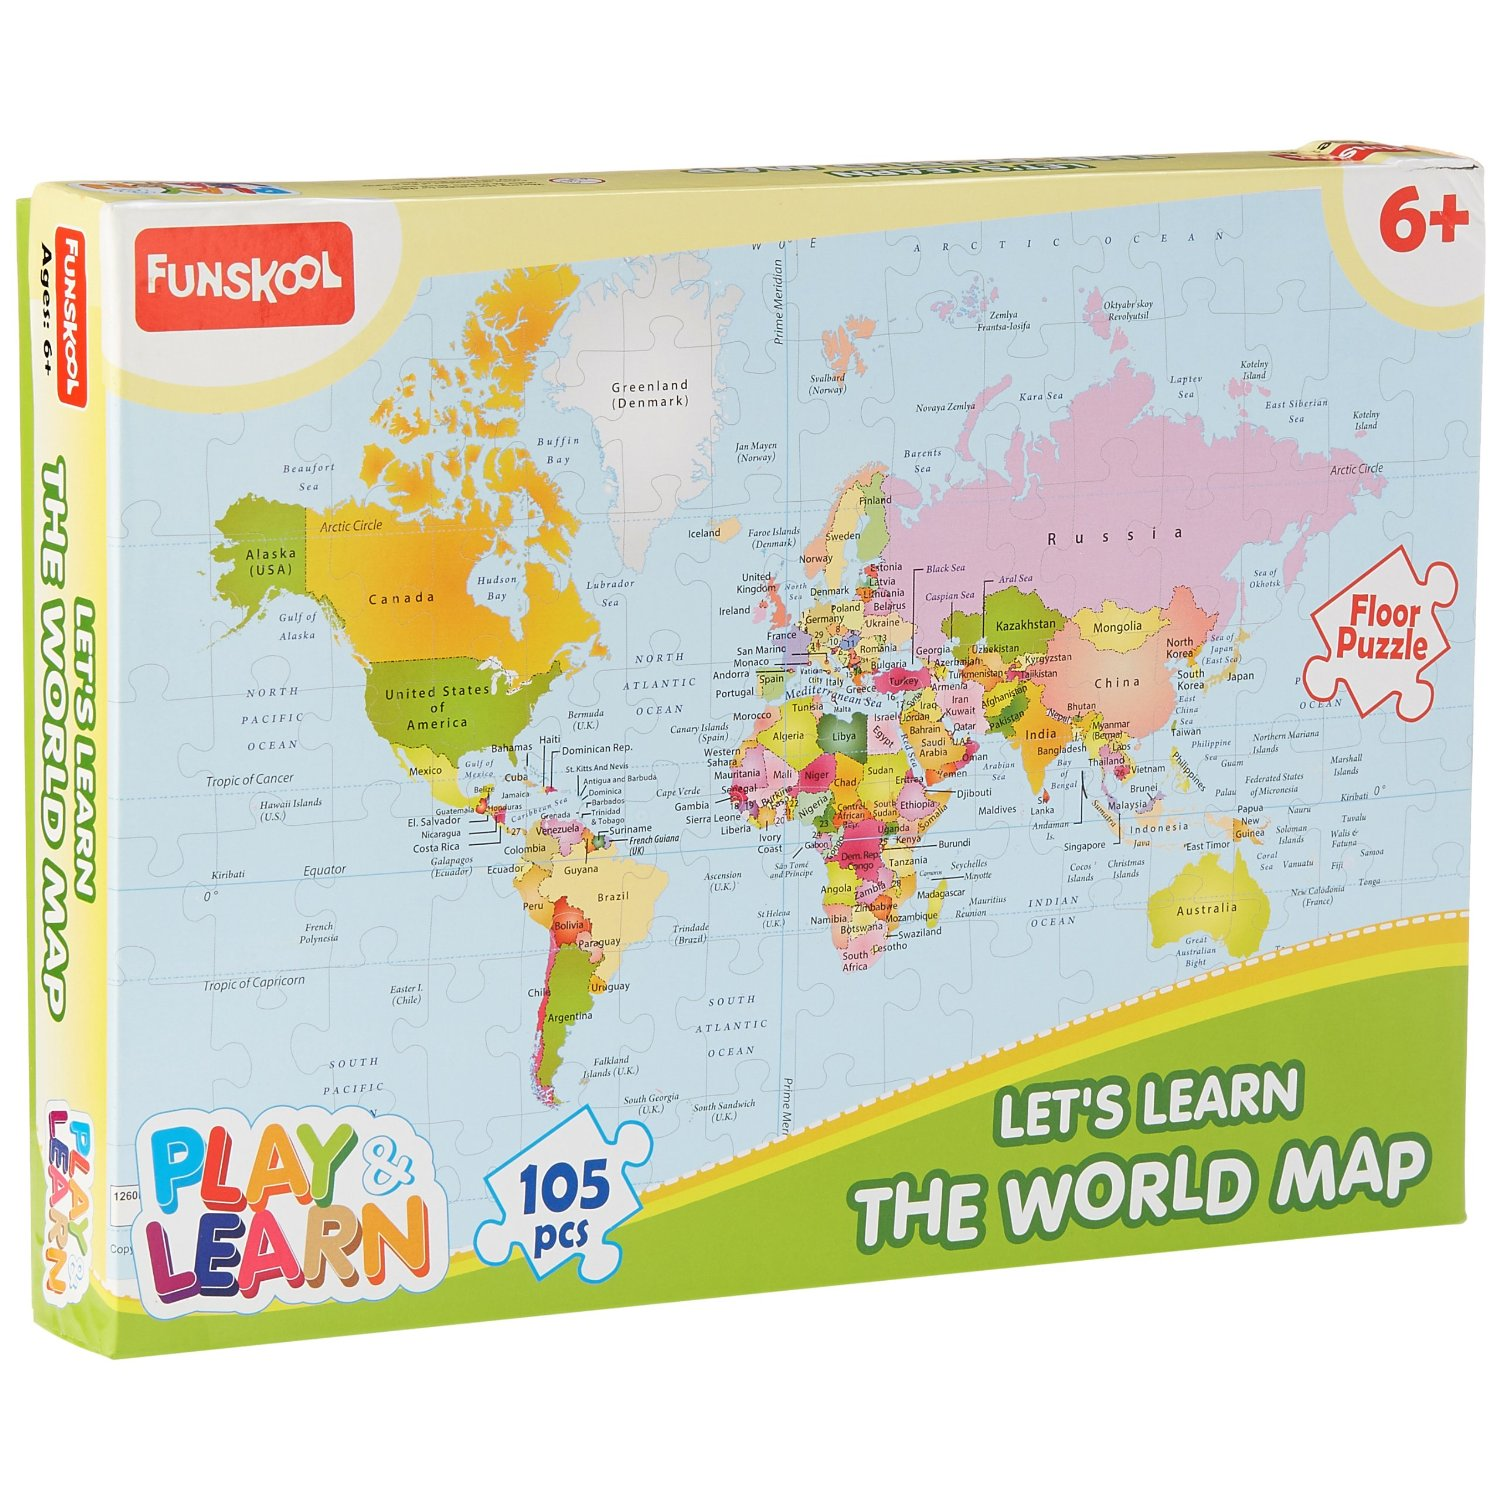 Lets Learn The World Map (105 Pcs)